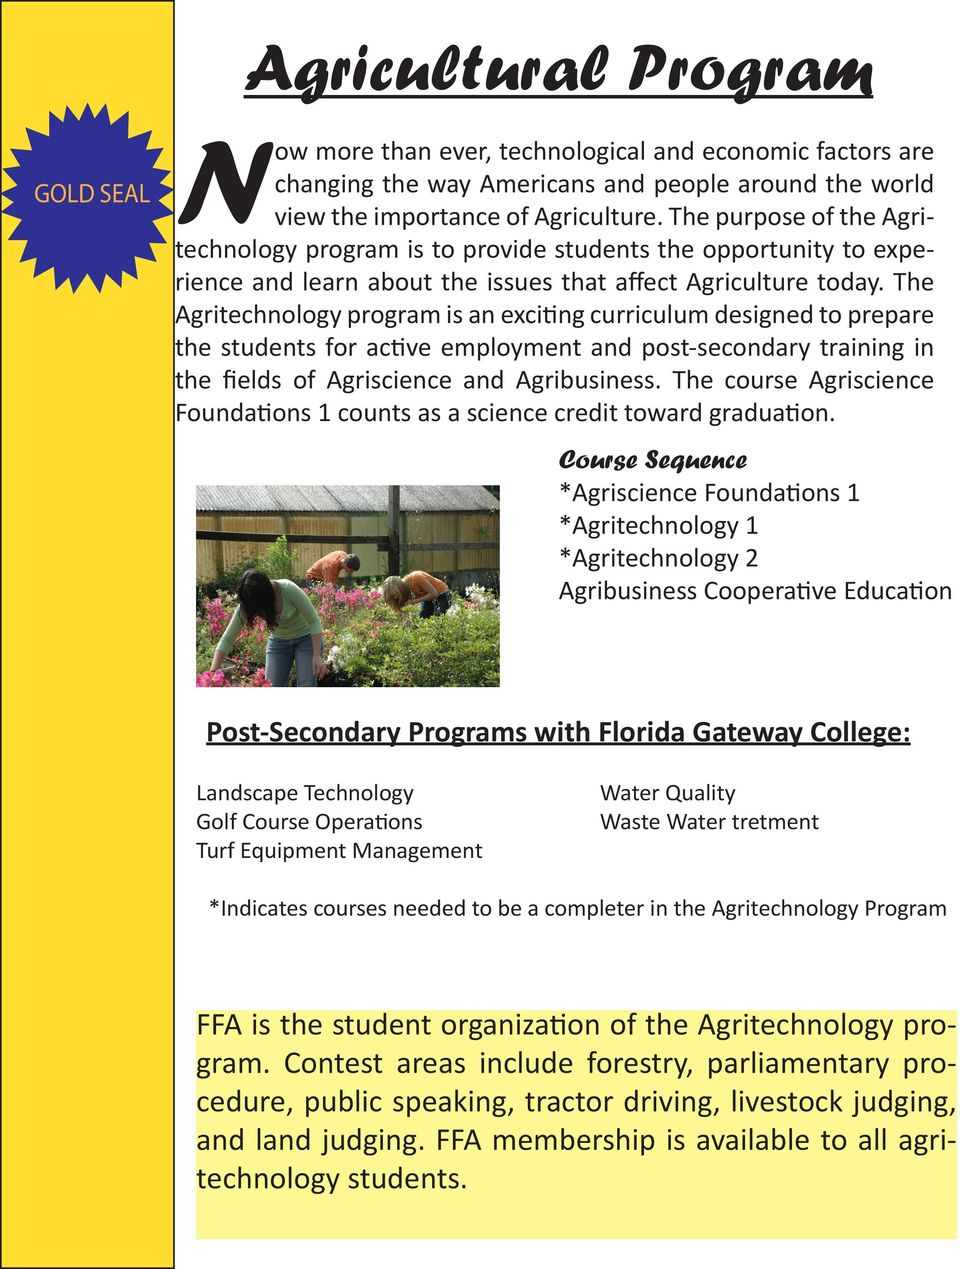 The Agritechnology program is an exciting curriculum designed to prepare the students for active employment and post-secondary training in the fields of Agriscience and Agribusiness.